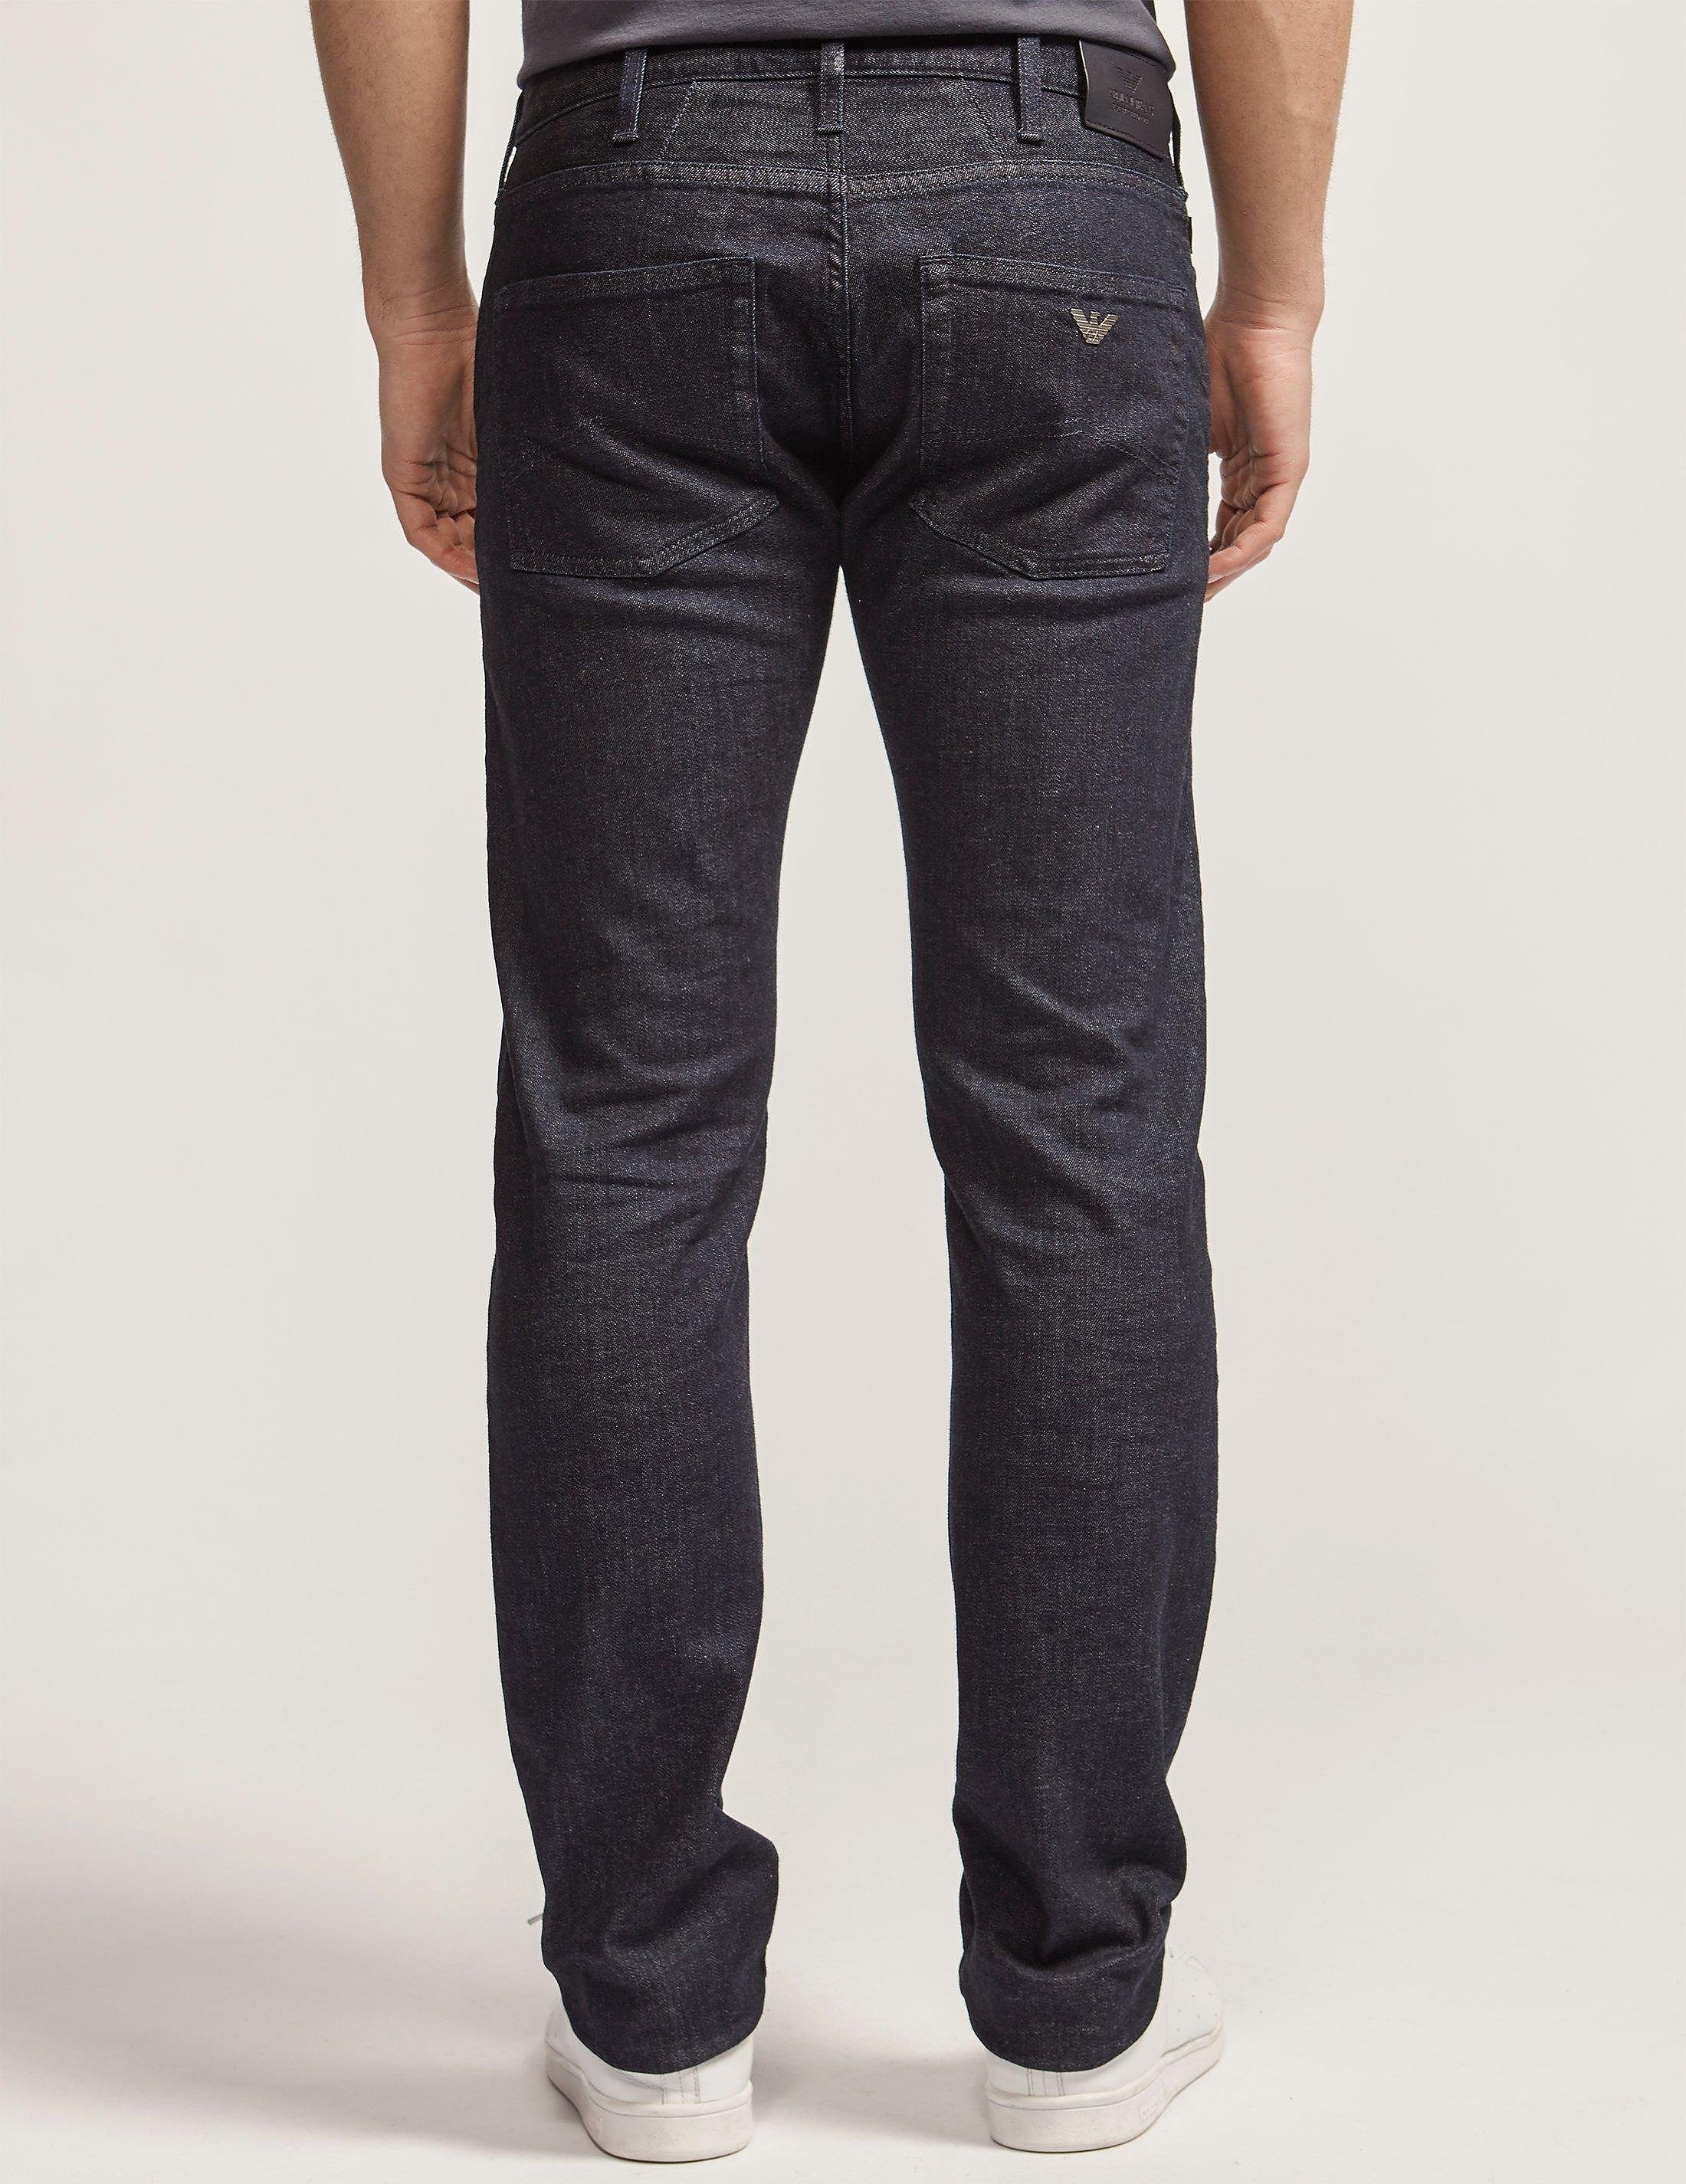 Armani Jeans J45 Slim Fit Jeans - Long